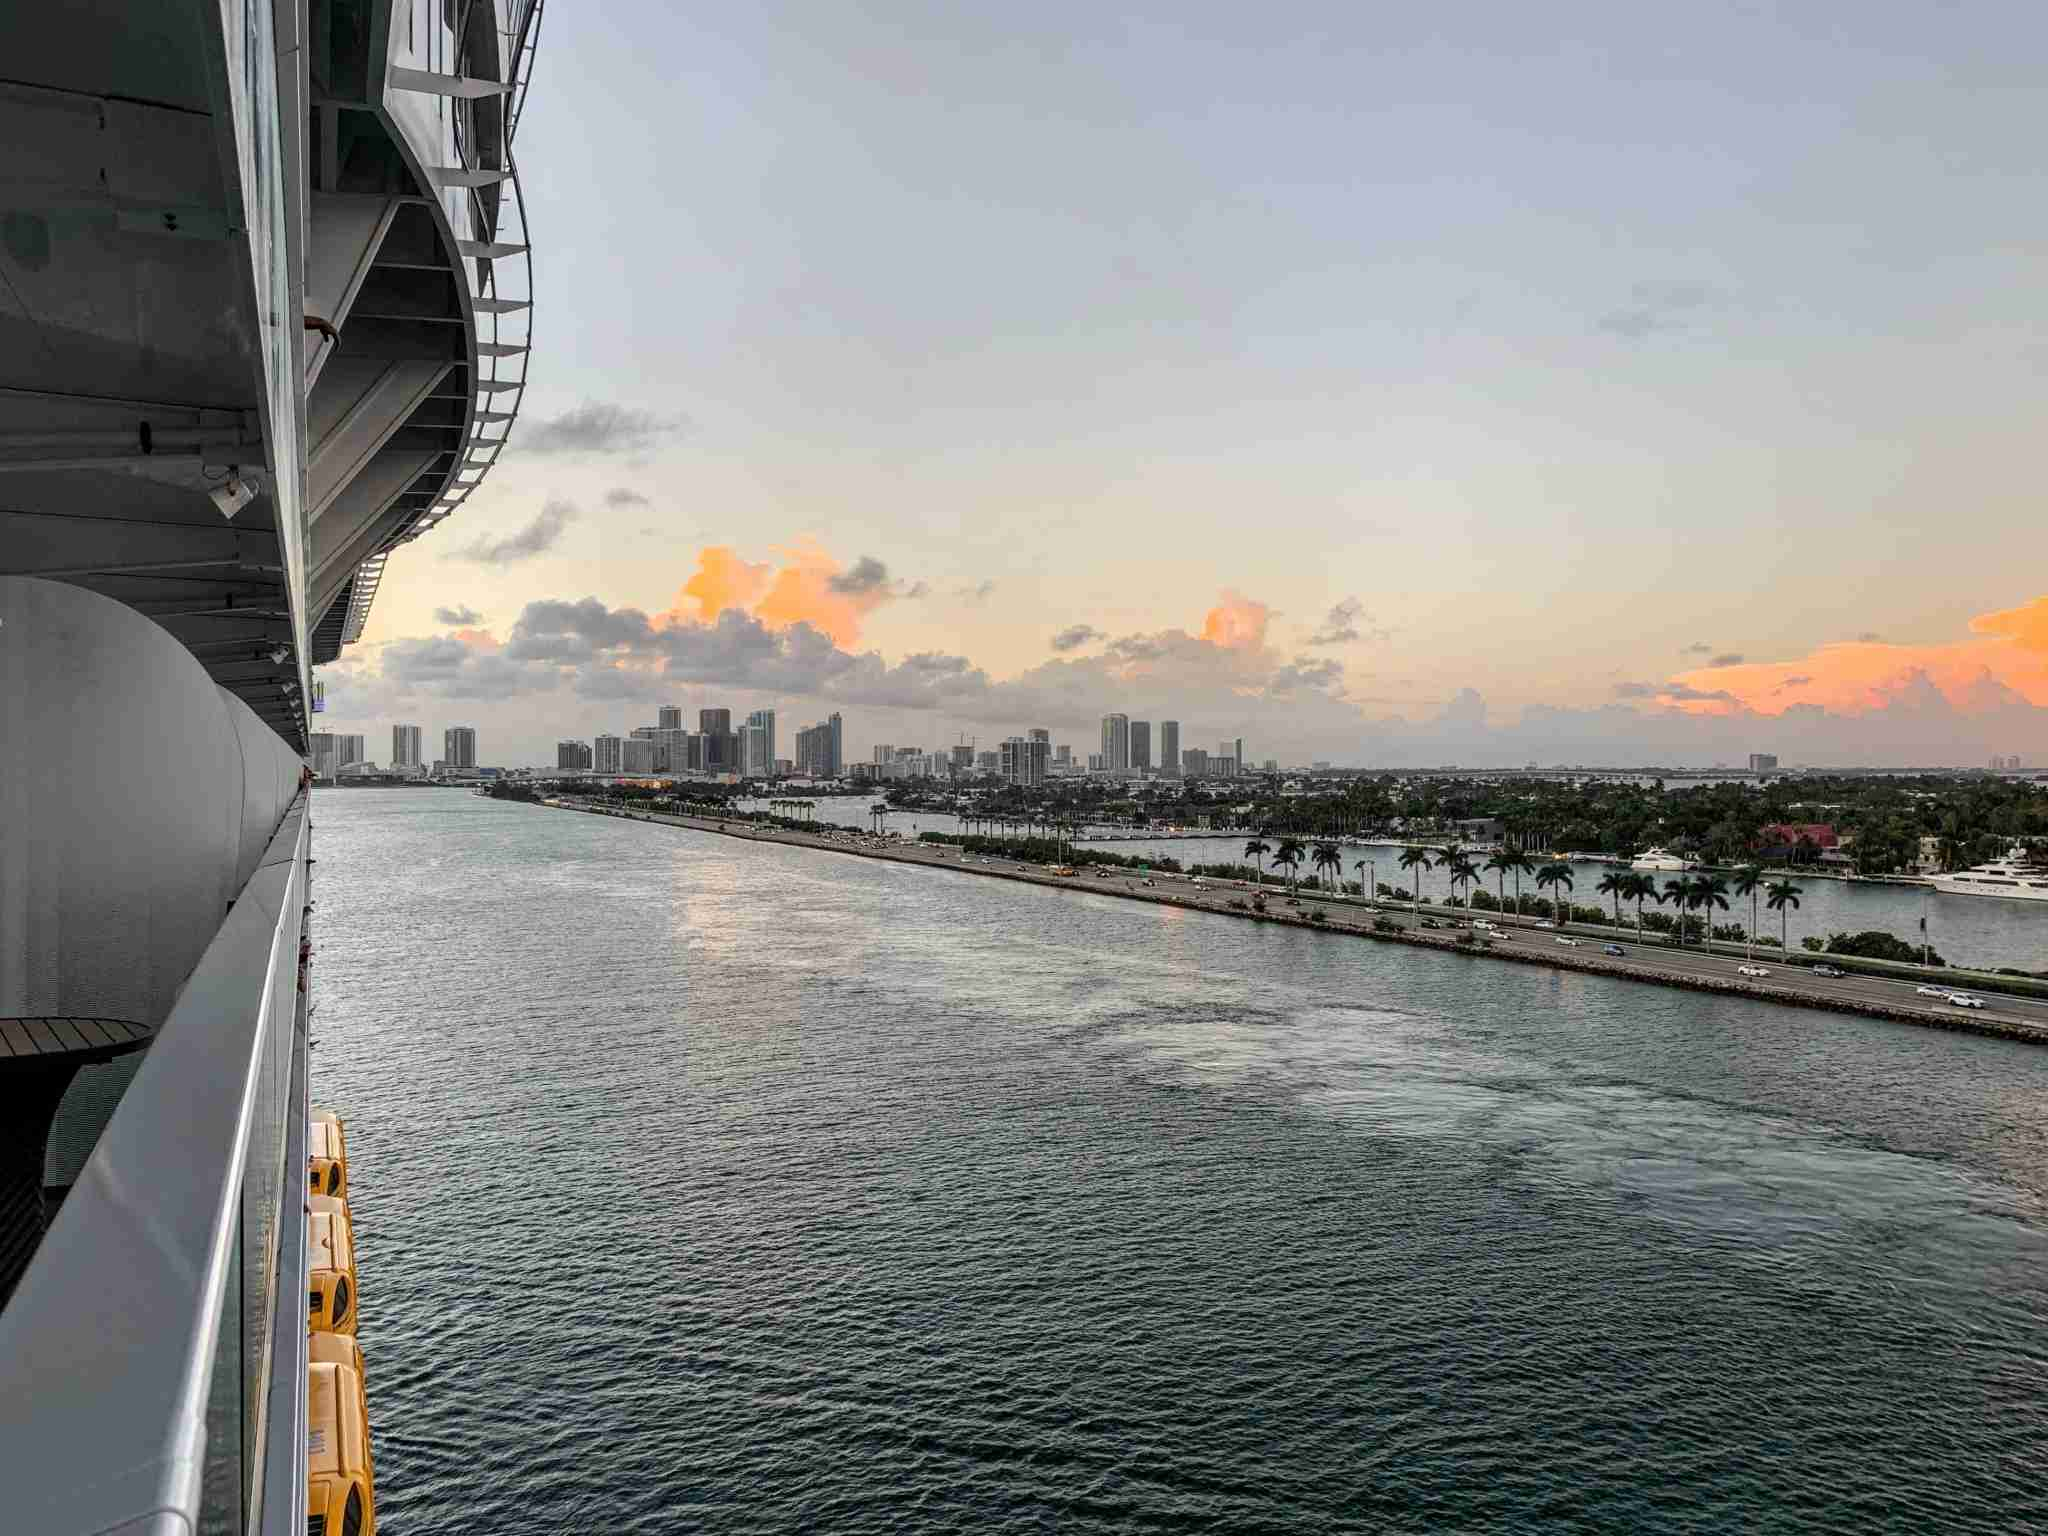 Royal Caribbean Symphony of the Seas - Sunset over Miami